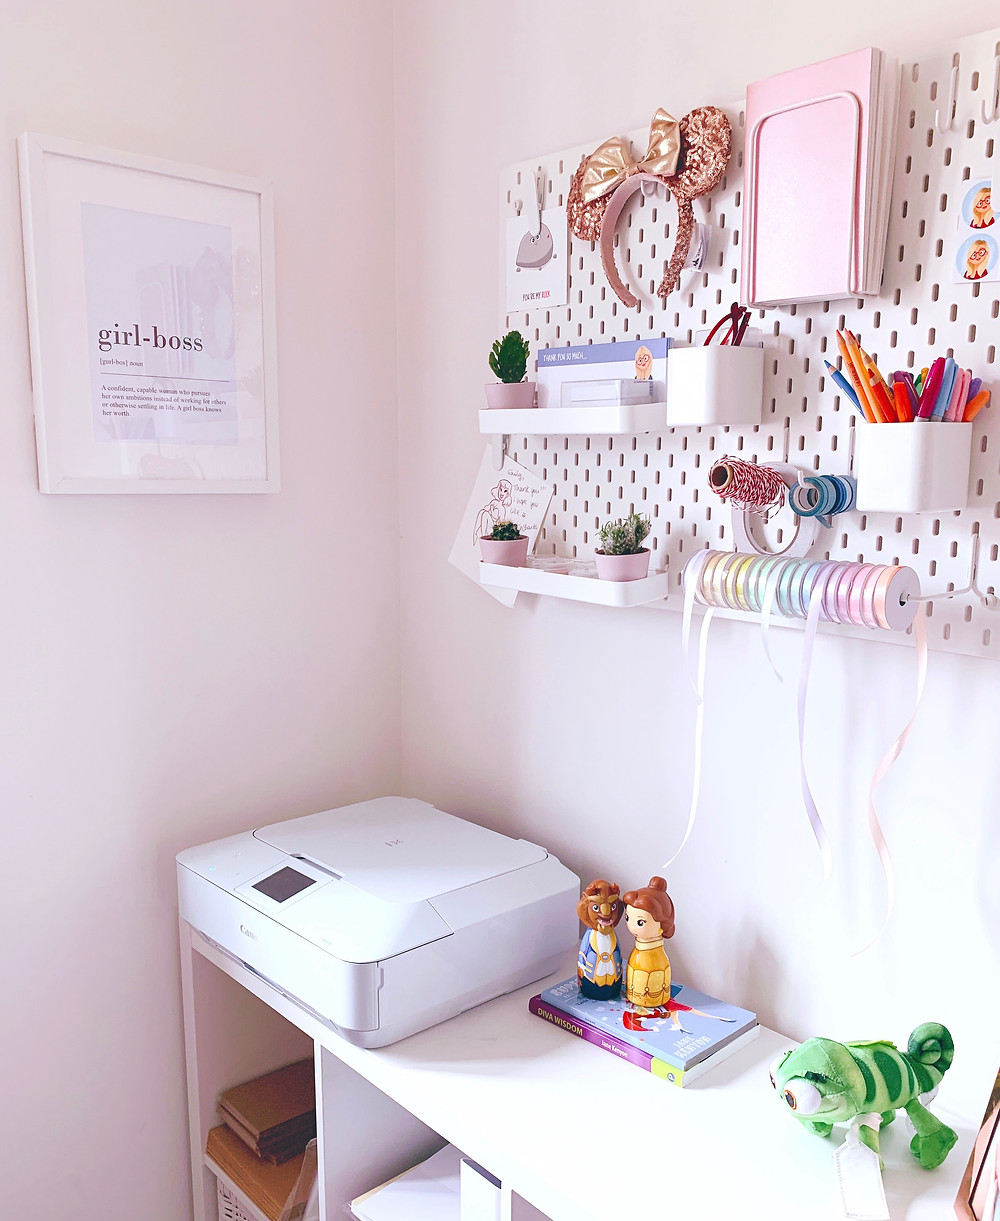 Emily's first studio, her back bedroom of her house. Showing her pegboard and printer.